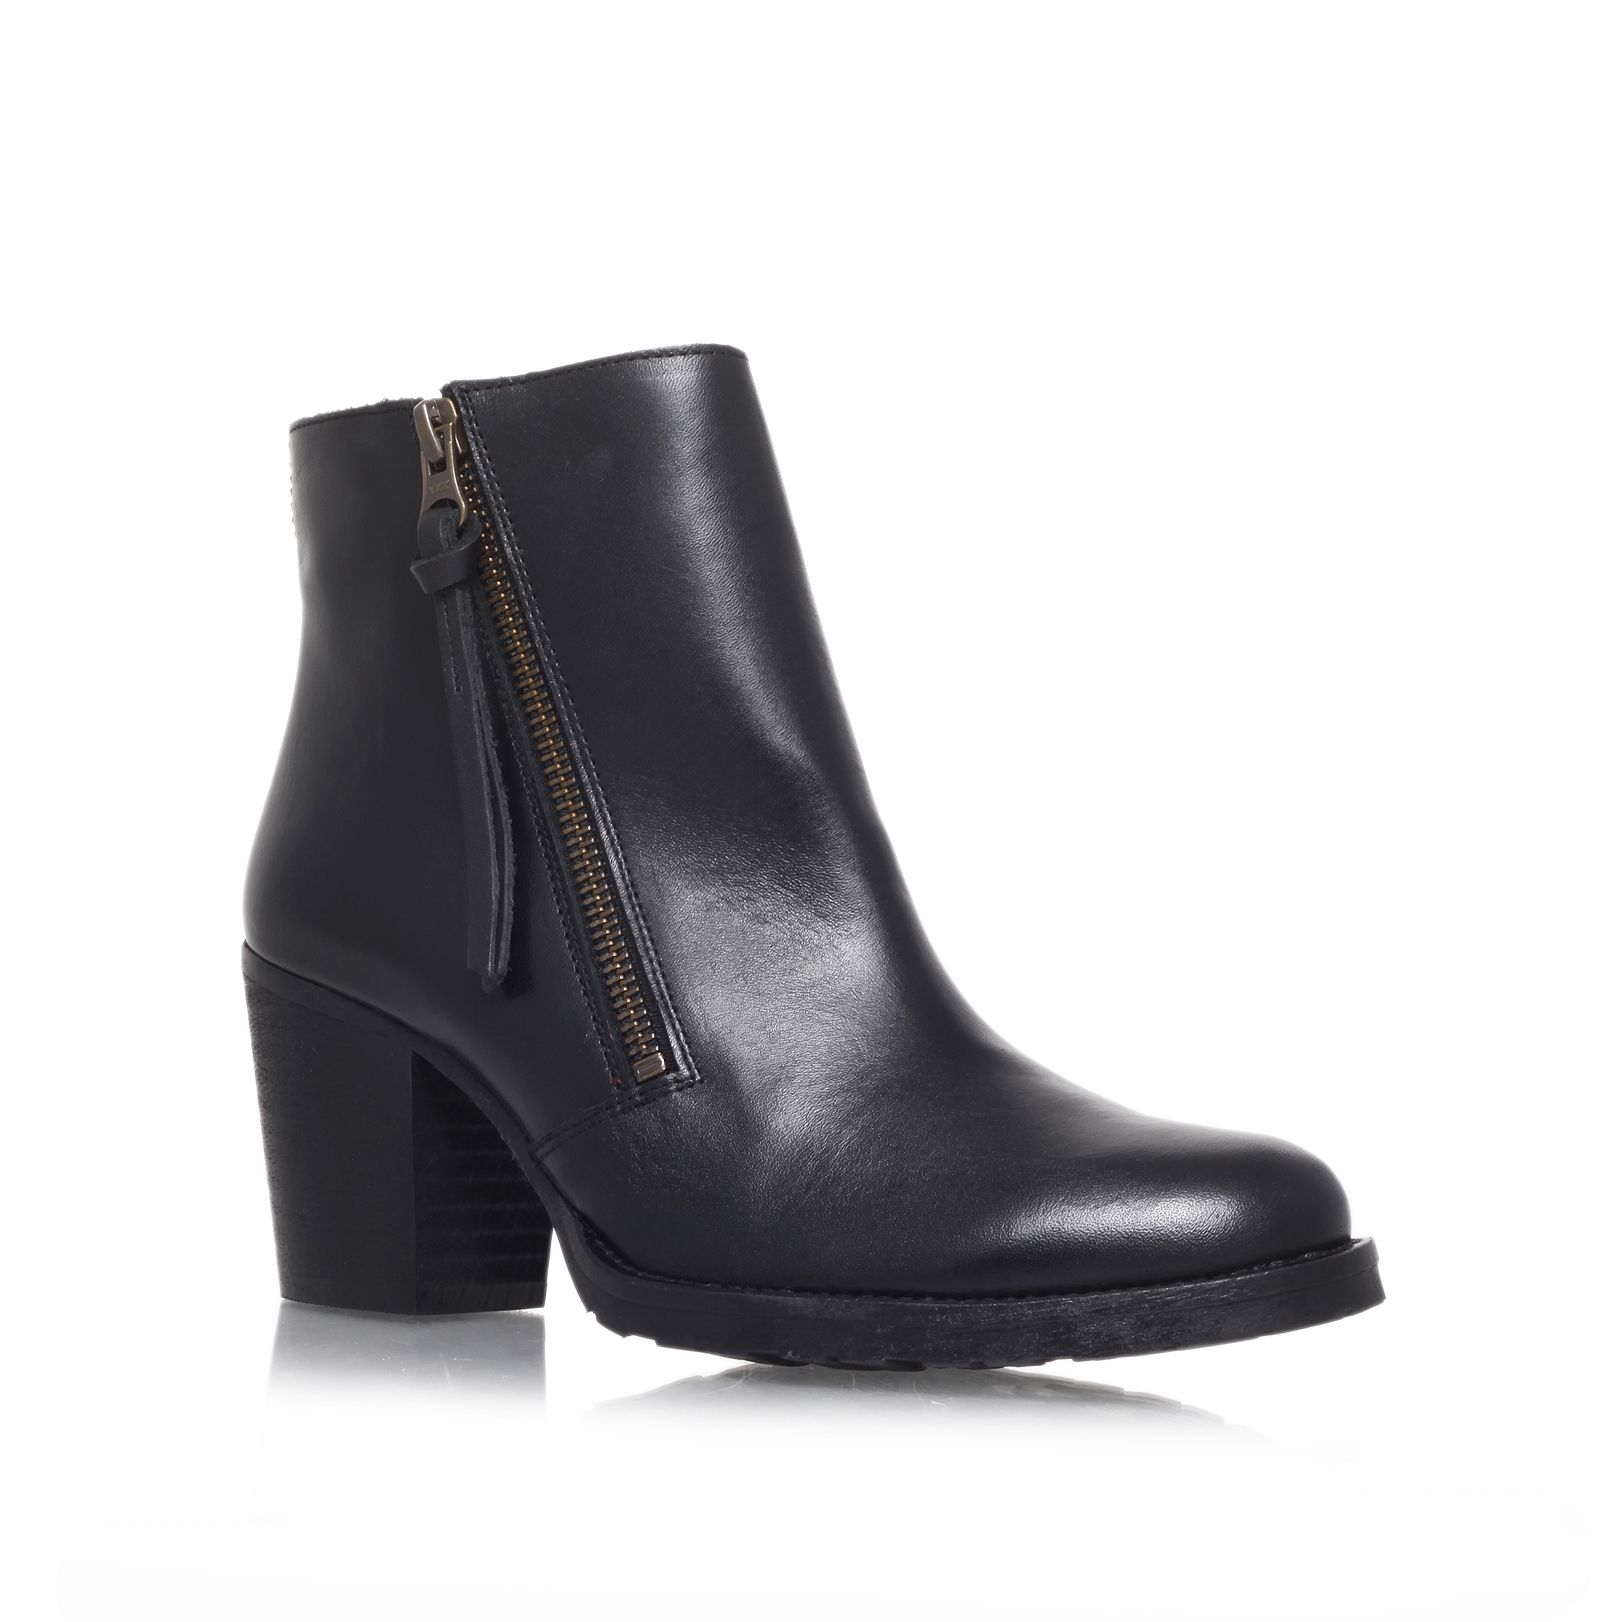 Sweep mid heel ankle boots